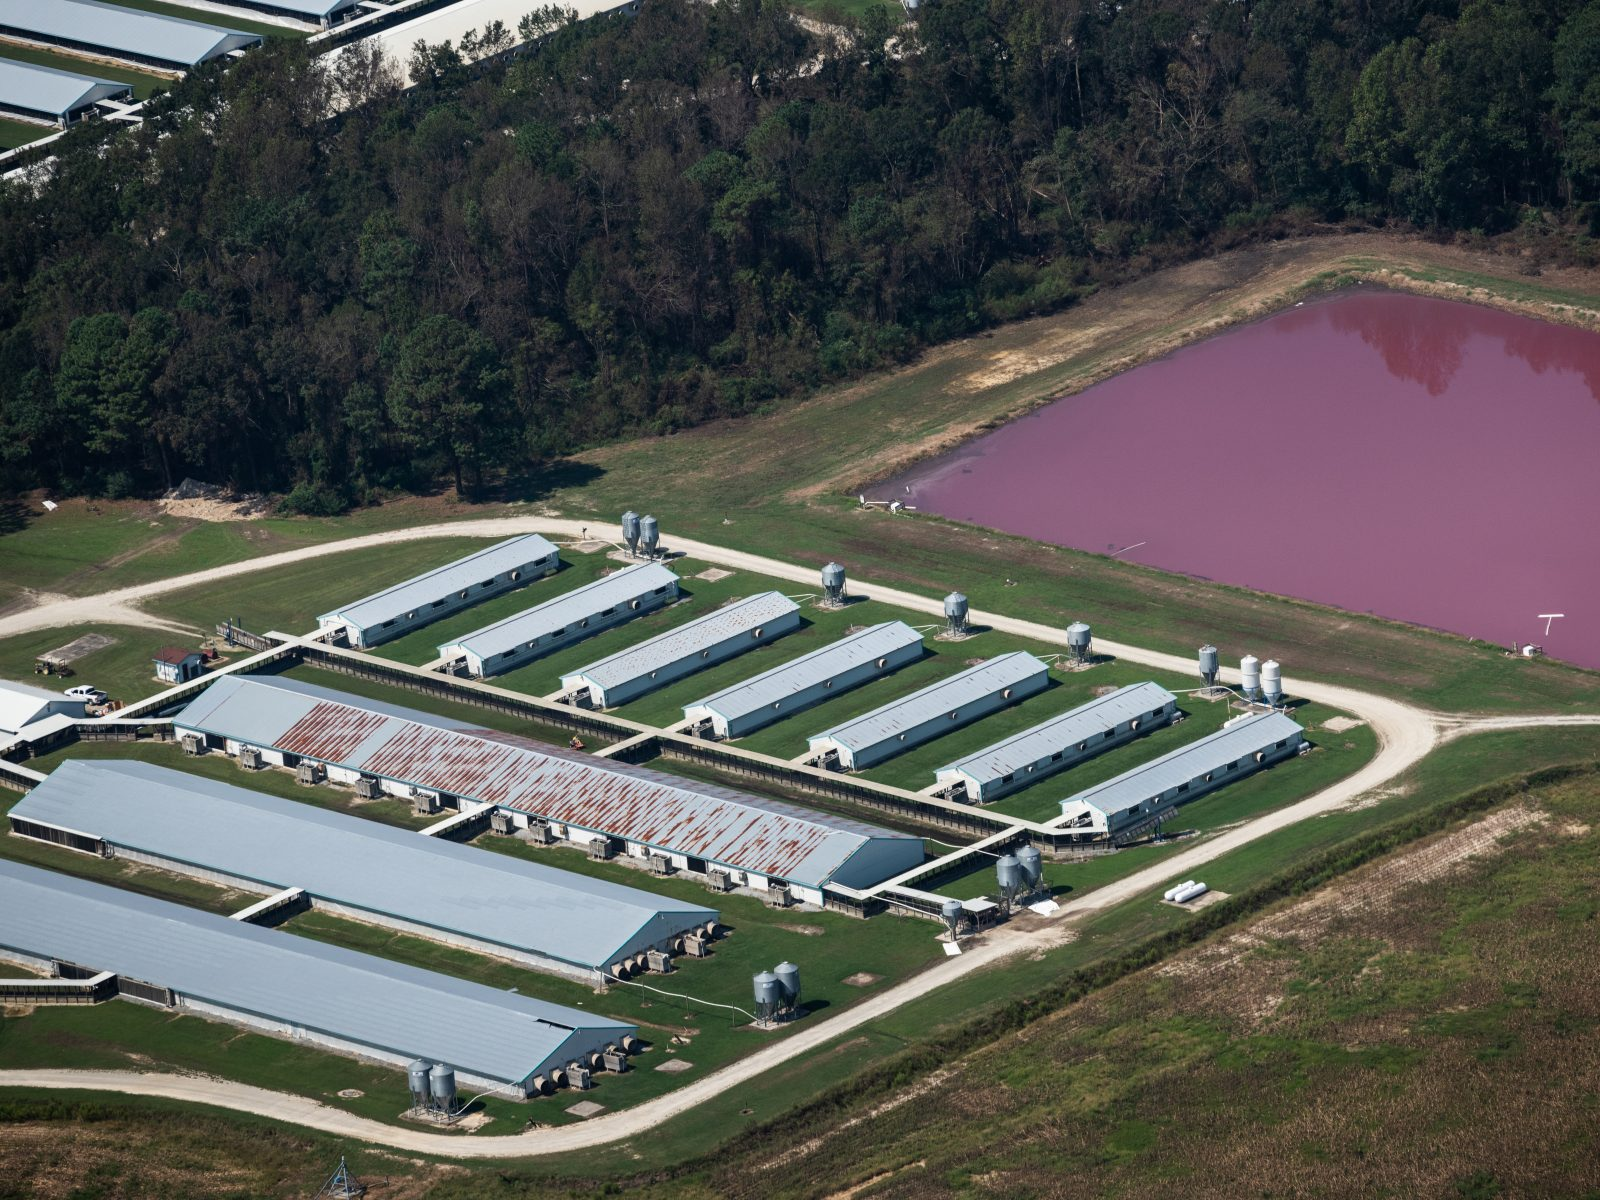 Aerial view of CAFO barns and manure lagoons in North Carolina